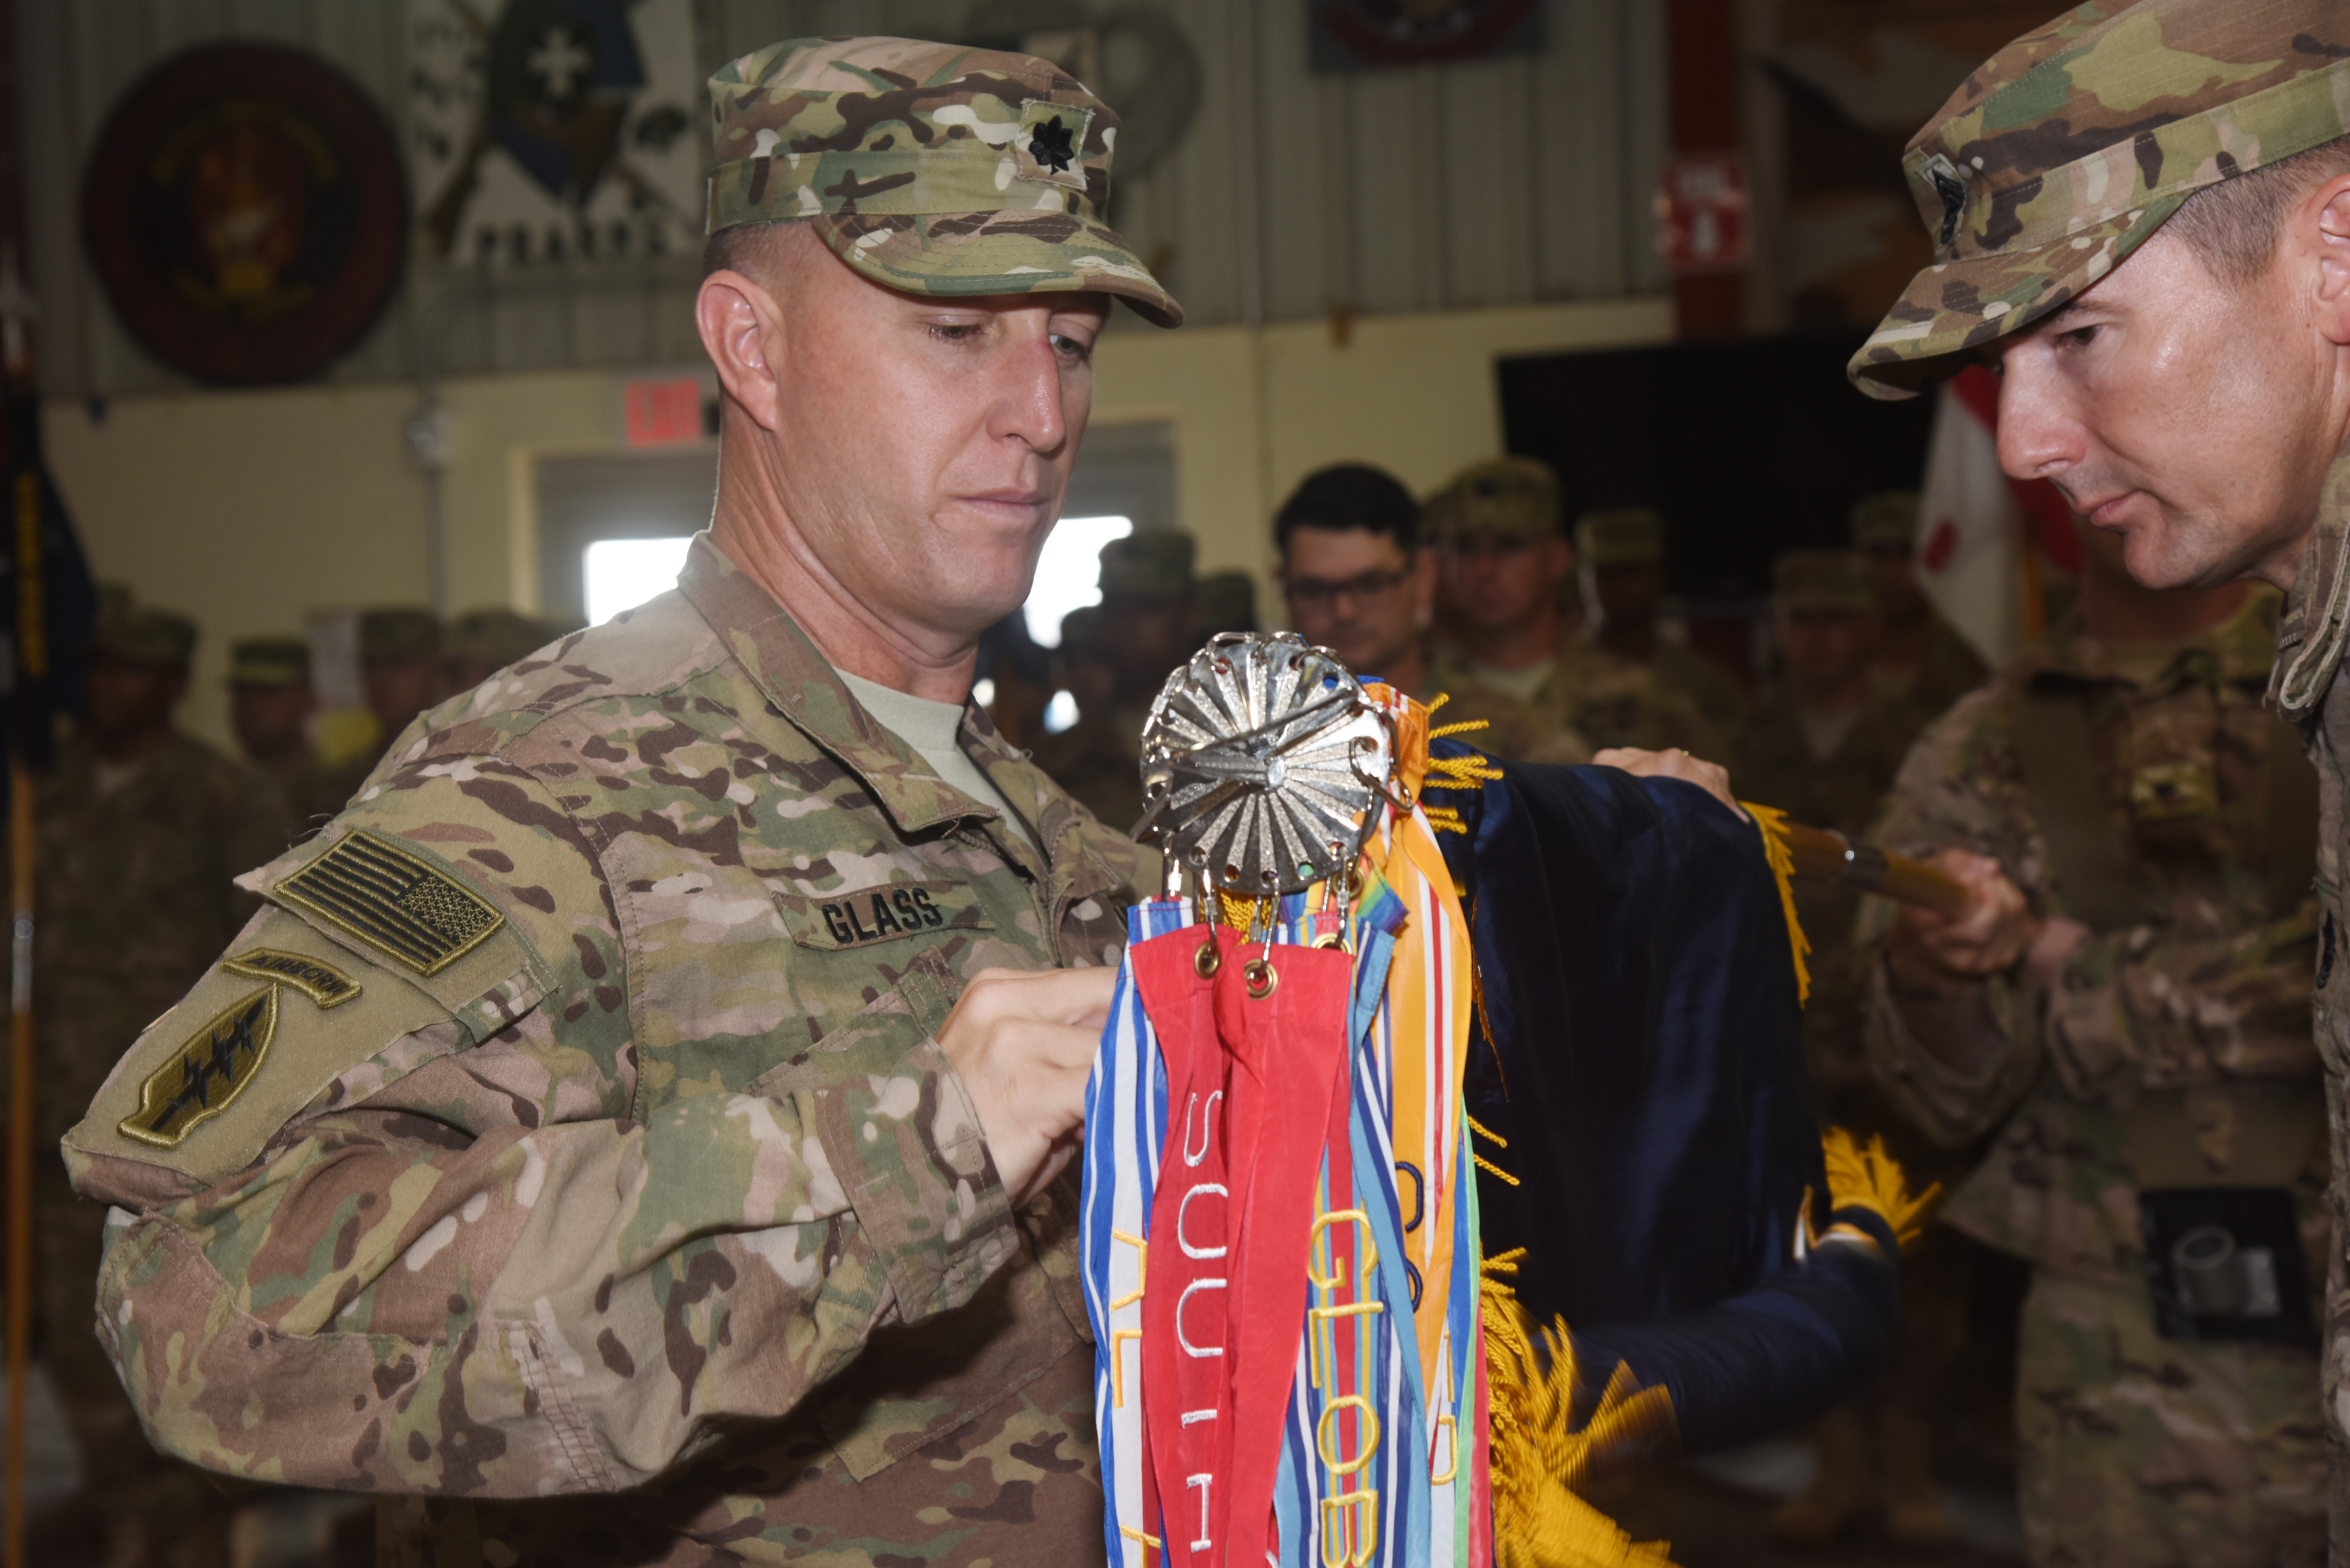 Lt. Col. Jerry Glass, 2nd Battalion, 124th Infantry Regiment commander, unrolls his unit flag at a transfer of authority ceremony Sept. 24, 2015, at Camp Lemonnier, Djibouti.  The uncasing of the regiment colors signifies the battalion's arrival from Florida, and the soldiers' preparedness to assume its role within Combined Joint Task Force-Horn of Africa.  (U.S. Air Force photo by Staff Sgt. Maria Bowman)